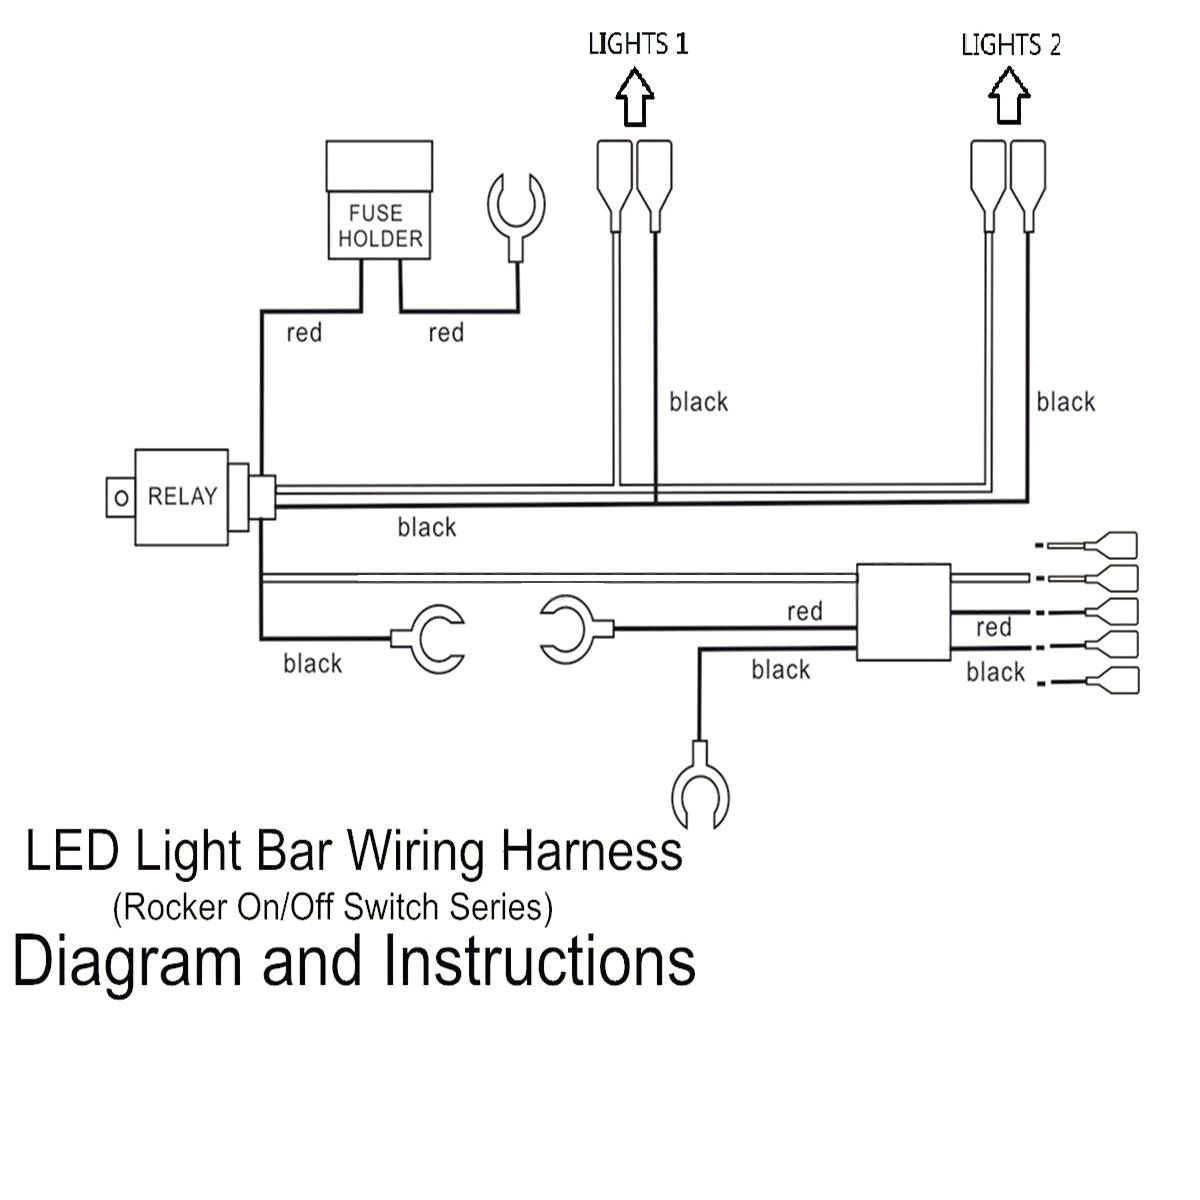 hight resolution of led emergency light bar wiring diagram wiring diagram third levelled emergency light bar wiring diagram wiring